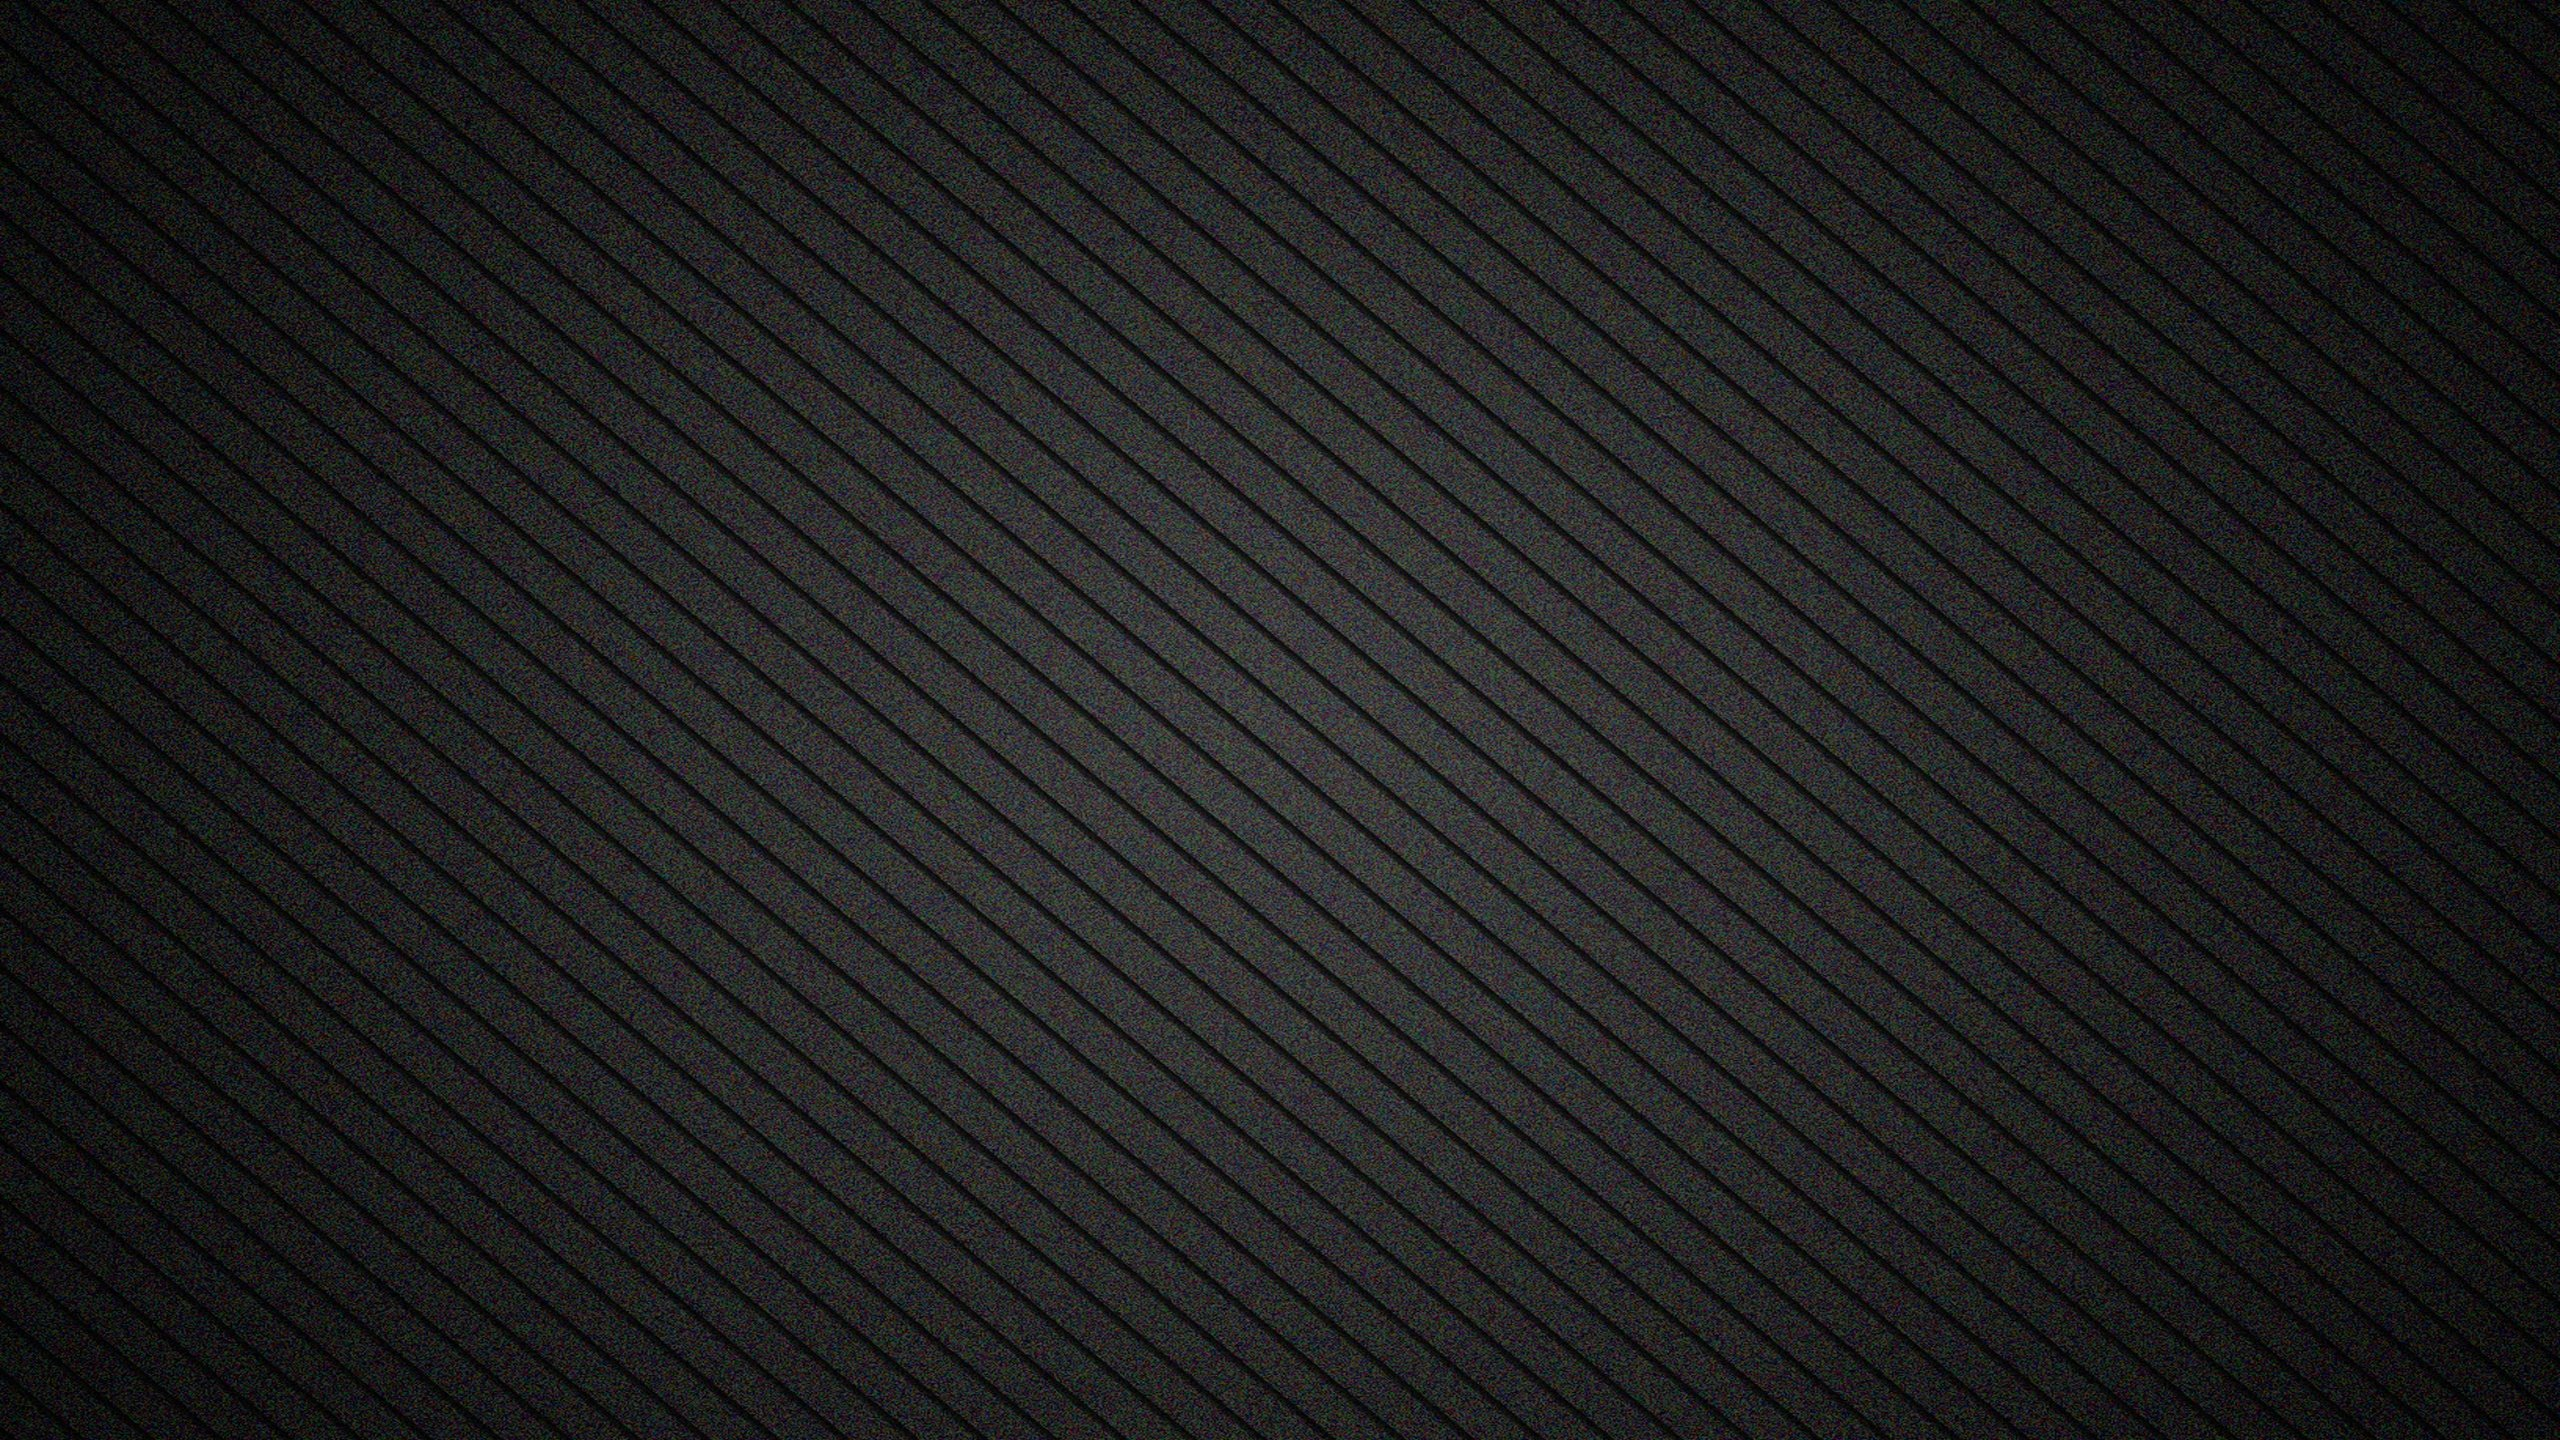 2560x1440 Black Lines Wallpaper desktop PC and Mac wallpaper 2560x1440